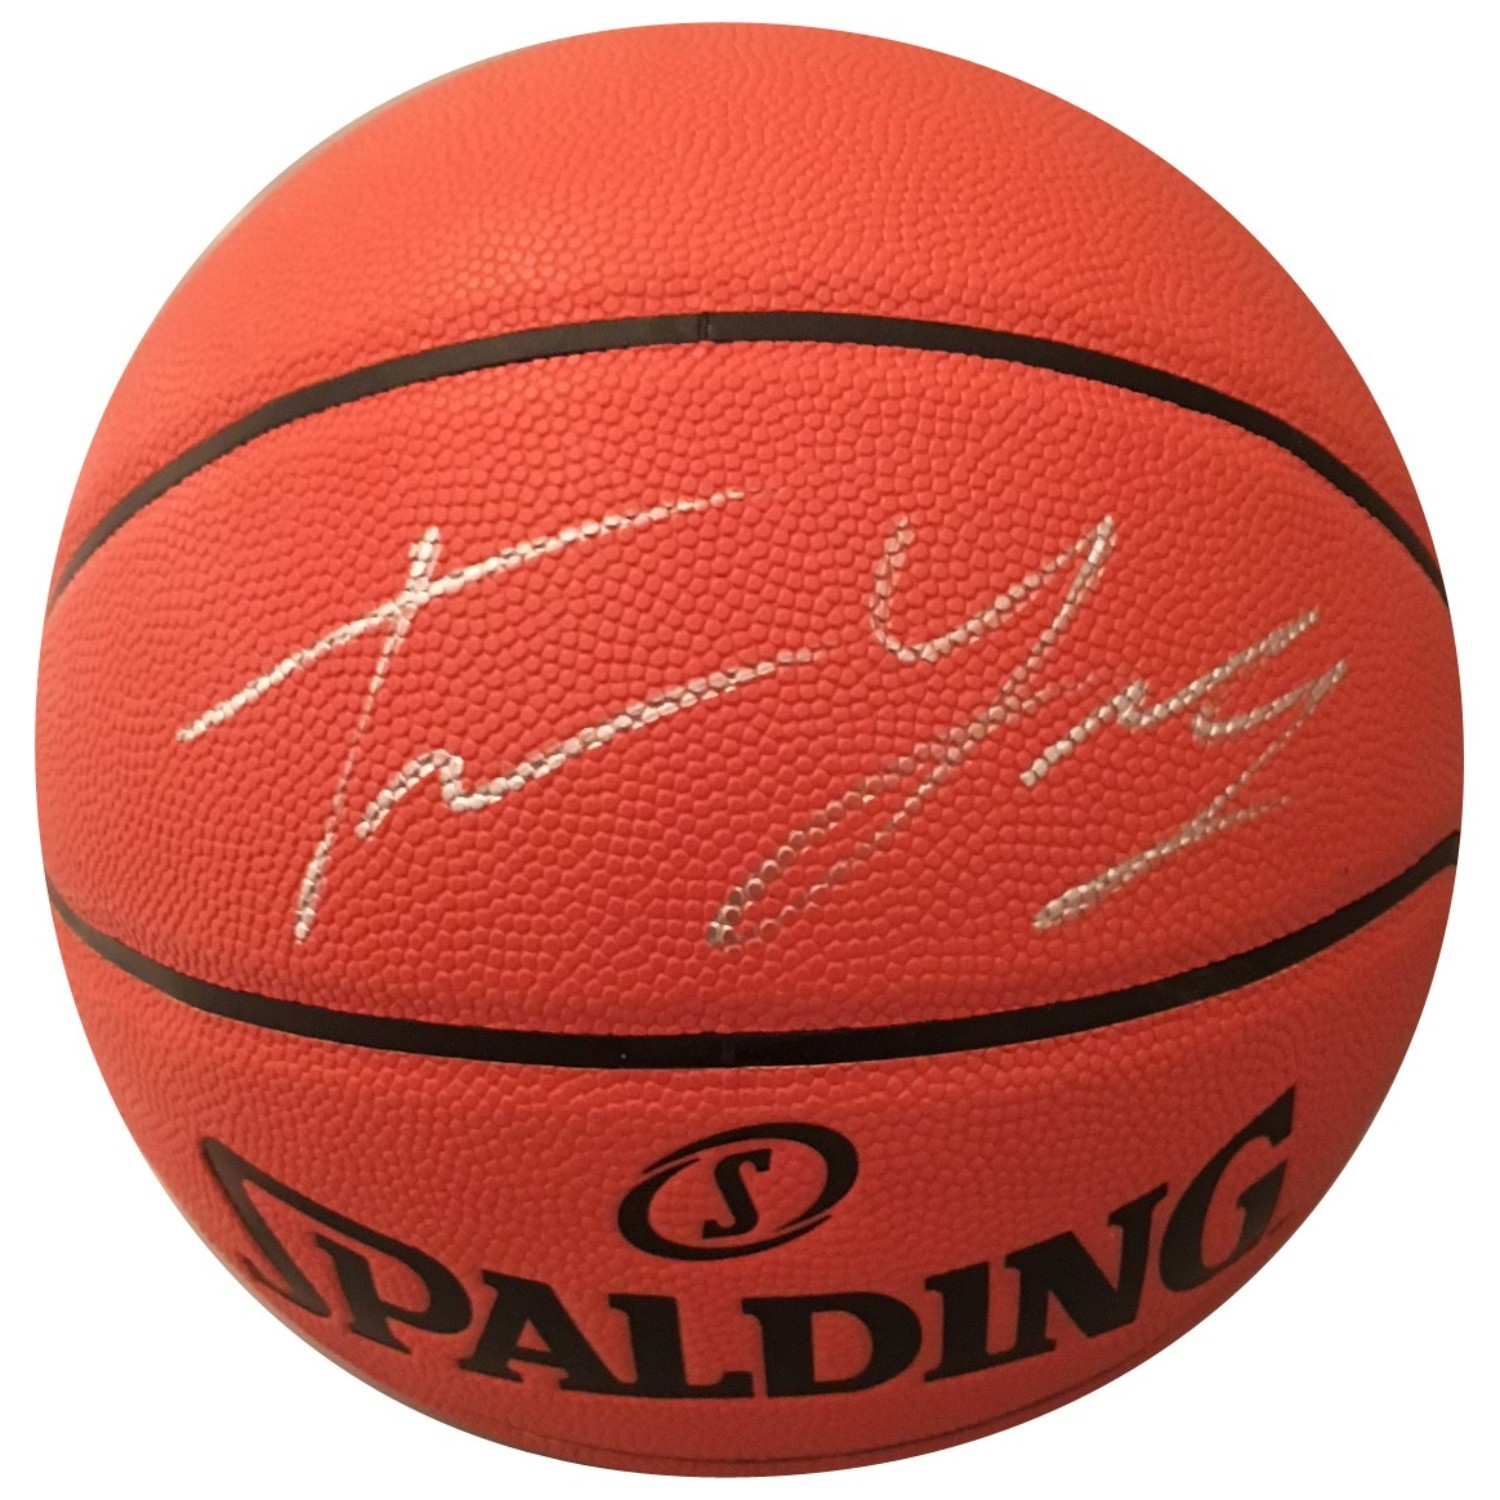 Trae Young Oklahoma Sooners Autographed NBA Signed Basketball PSA DNA COA